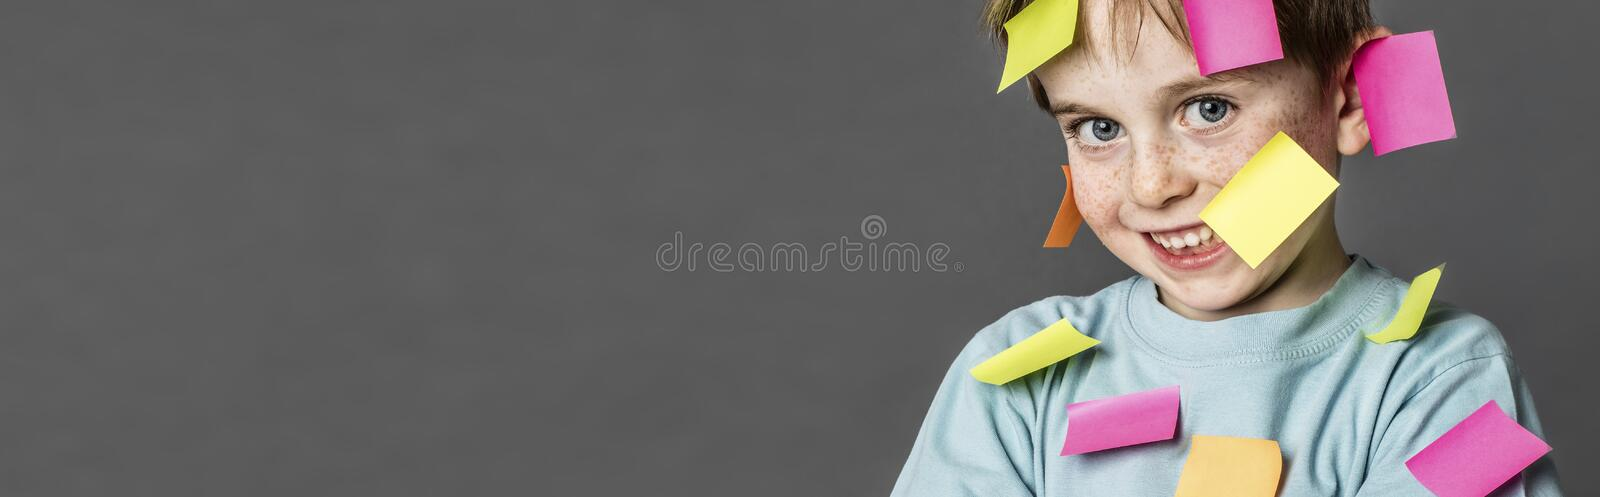 Cute busy boy smiling with sticky notes all over, banner royalty free stock photo